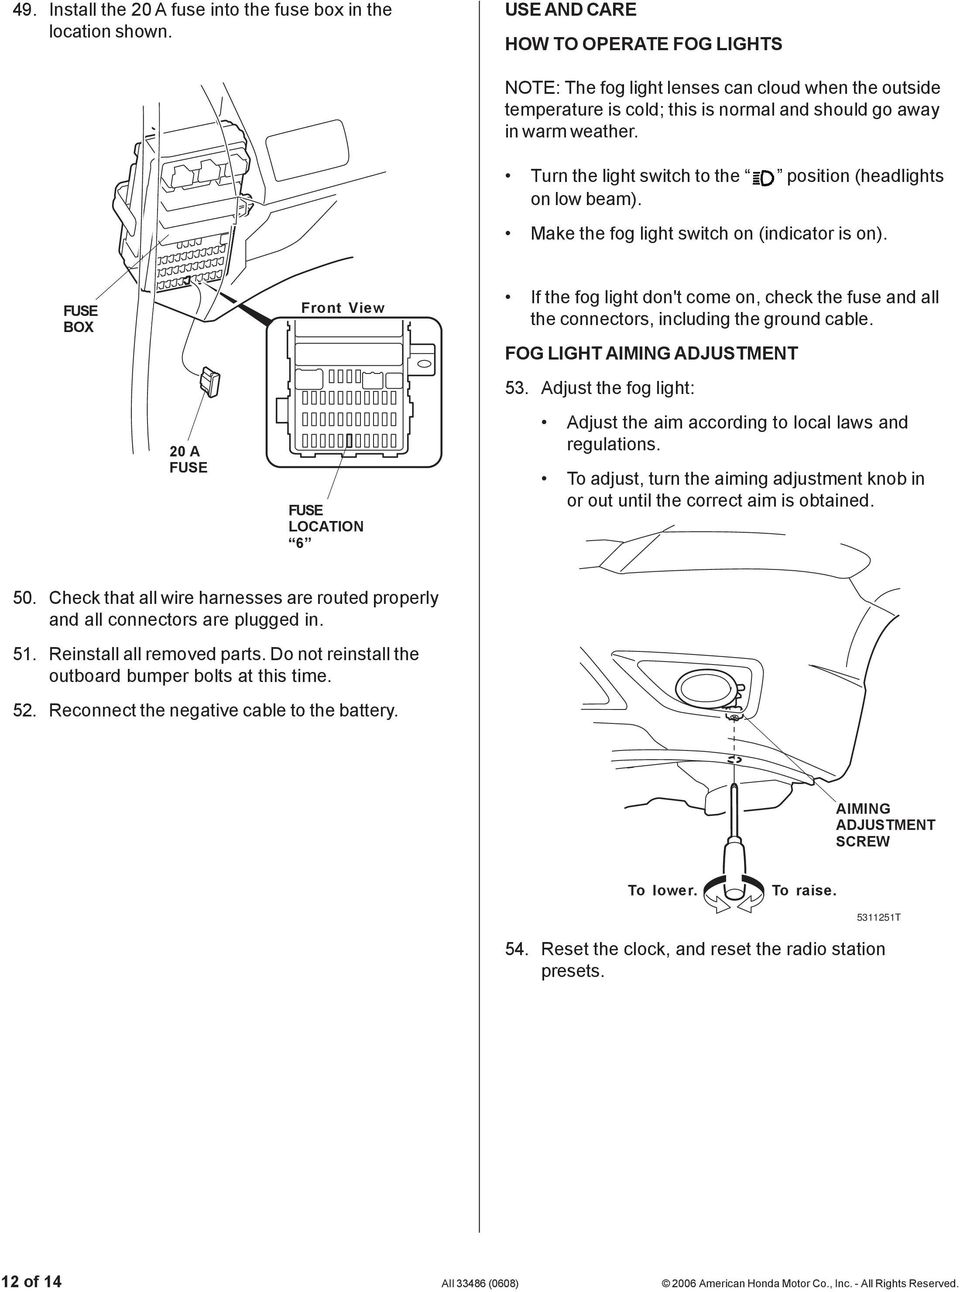 Installation Instructions Pdf Toyota Pickup Fuse Box Removal Turn The Light Switch To Position Headlights On Low Beam Make